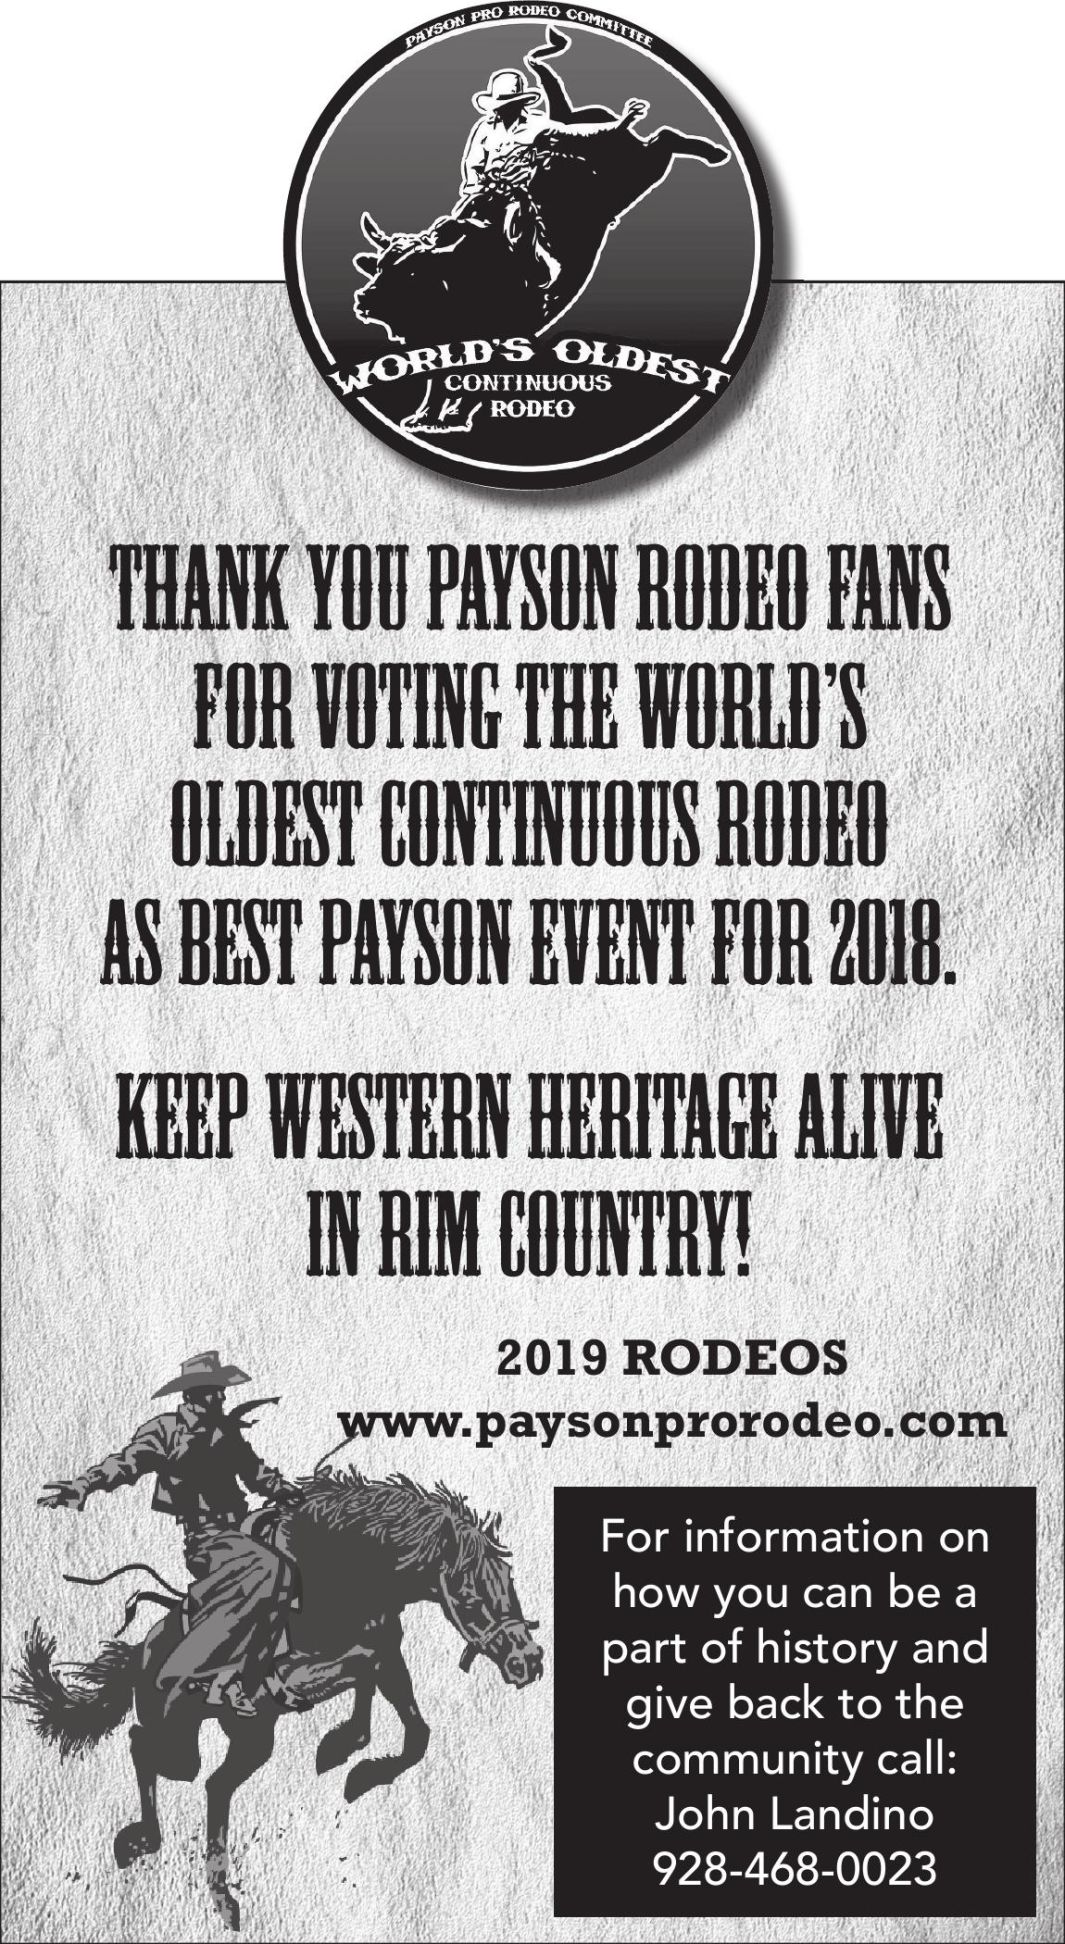 Payson Rodeo Committee